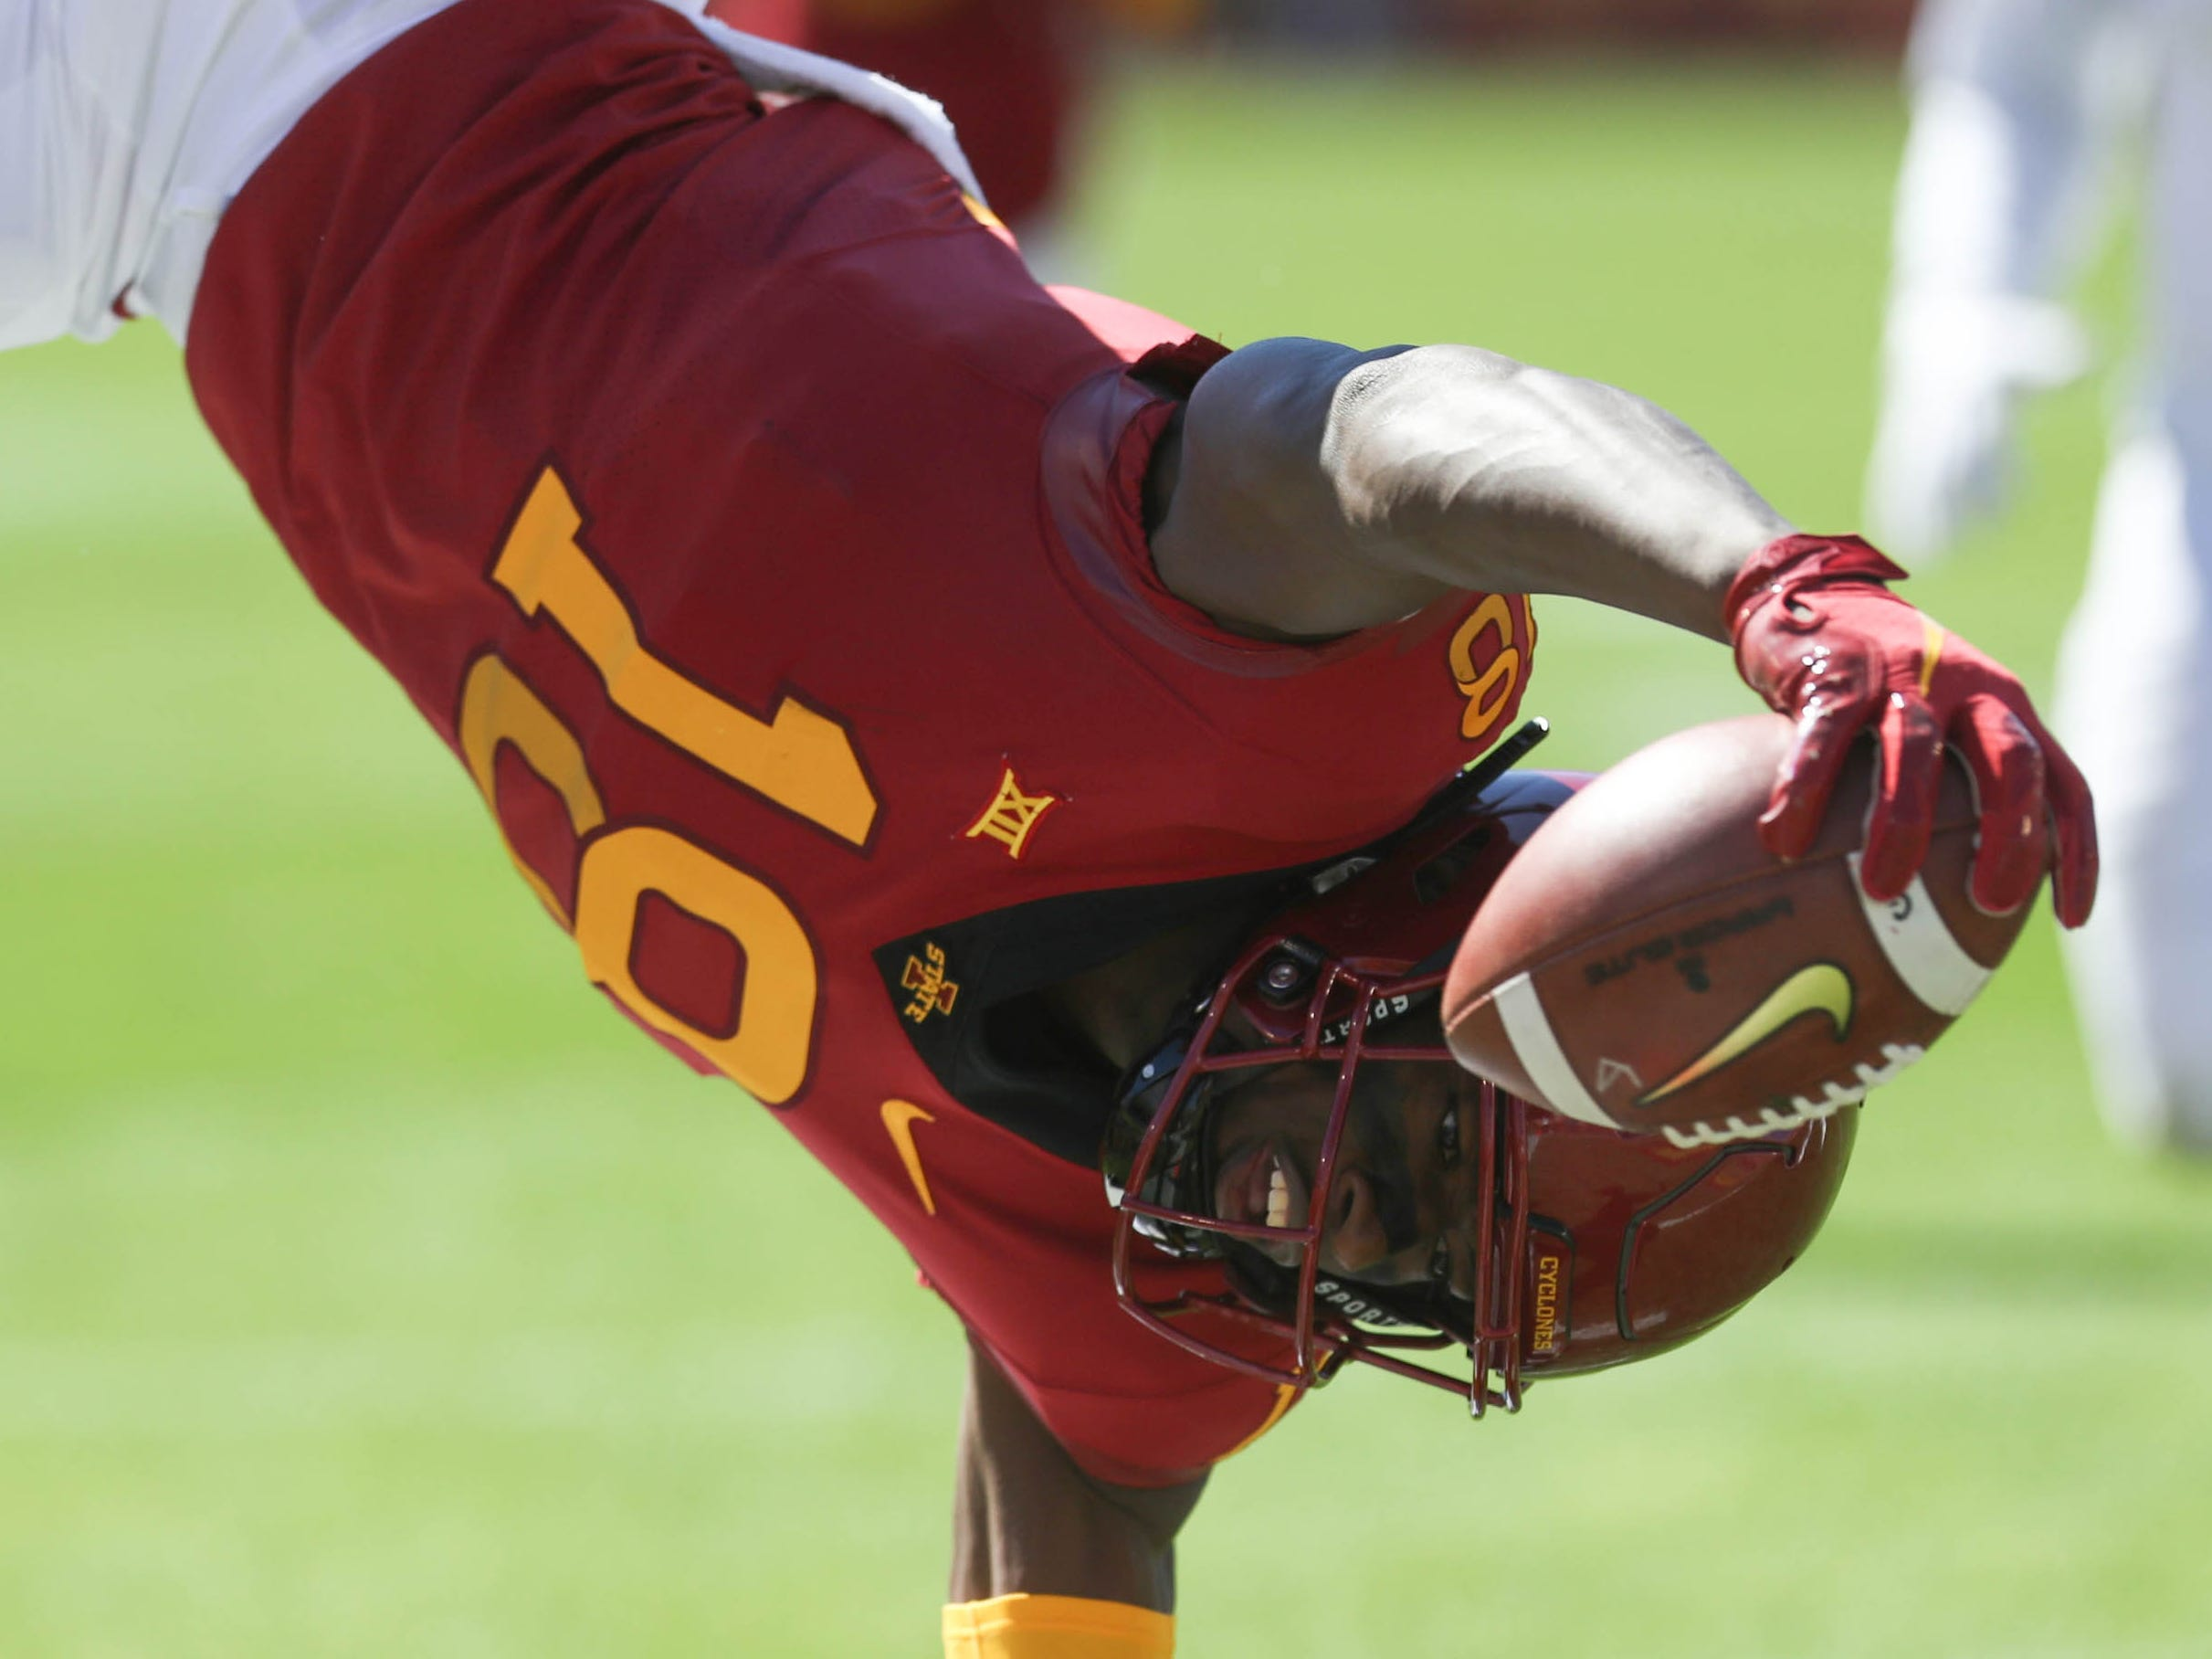 Iowa State Cyclones wide receiver Hakeem Butler scores a touchdown against the Akron Zips at Jack Trice Stadium.